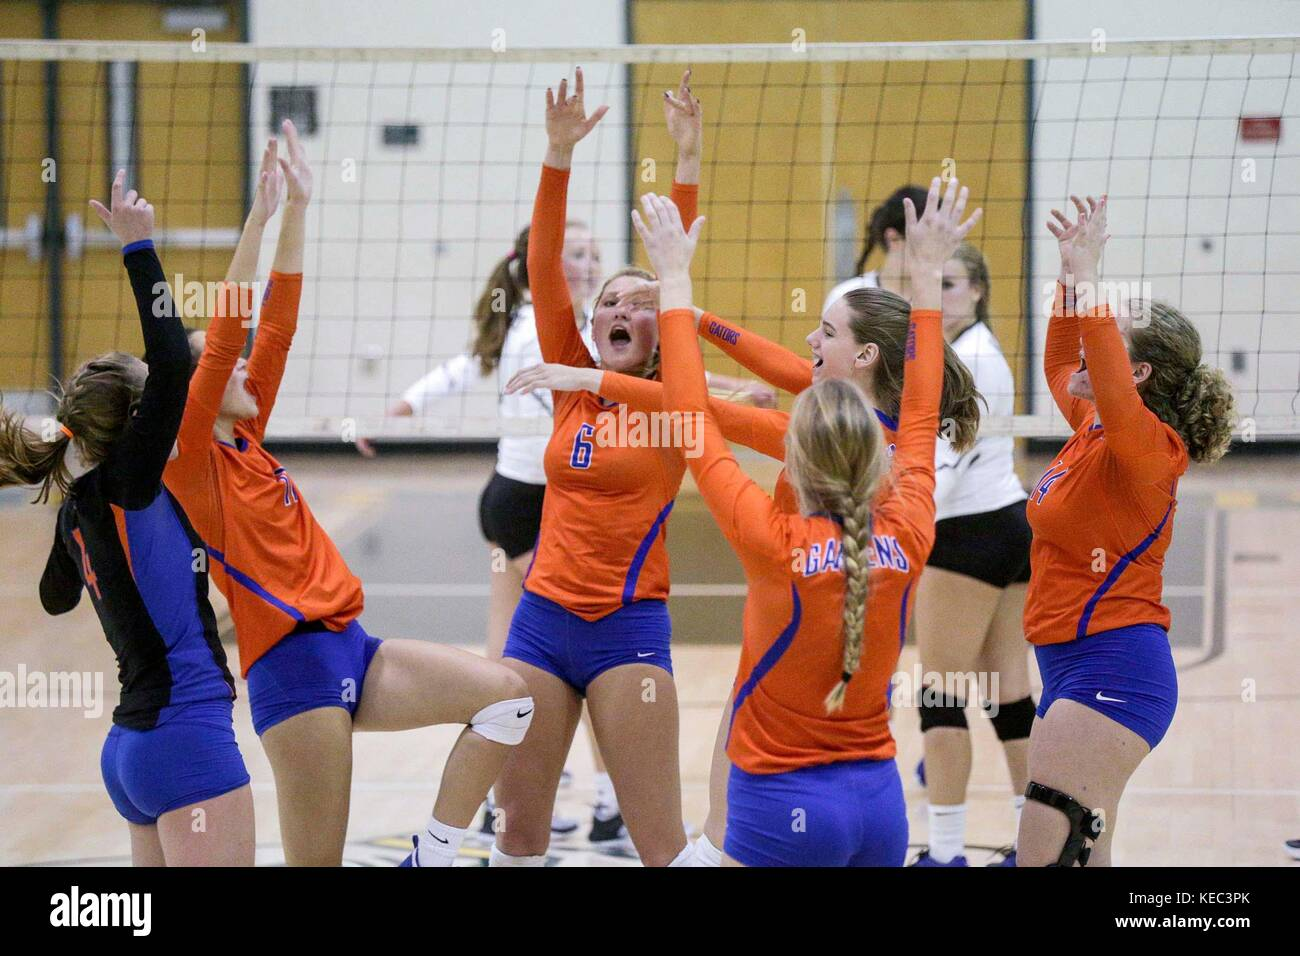 Florida, USA. 19th Oct, 2017. Palm Beach Gardens High School's volleyball team celebrates scoring a point during - Stock Image